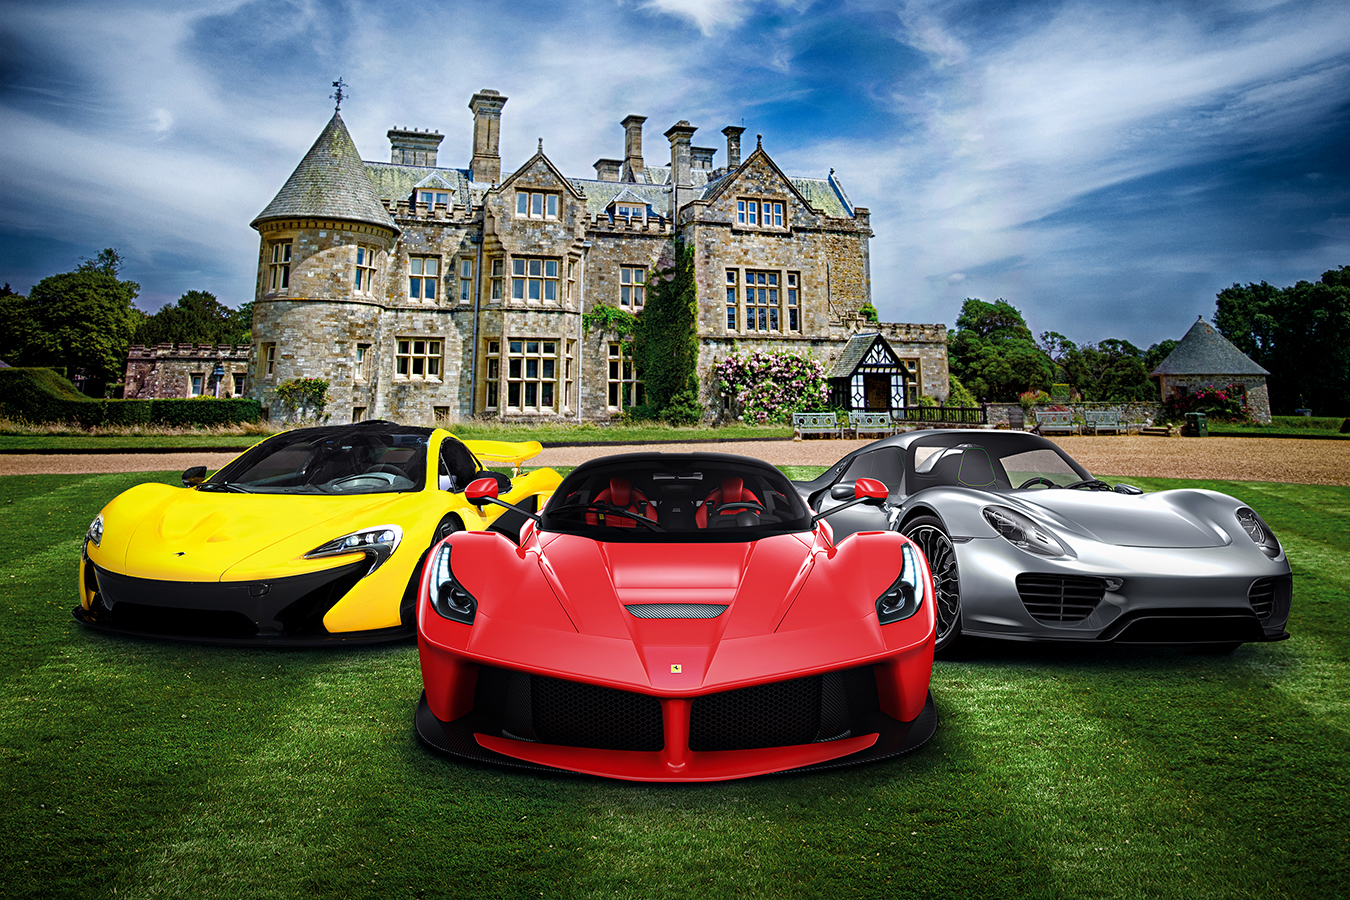 Beaulieu Events Calendar - Car events this weekend